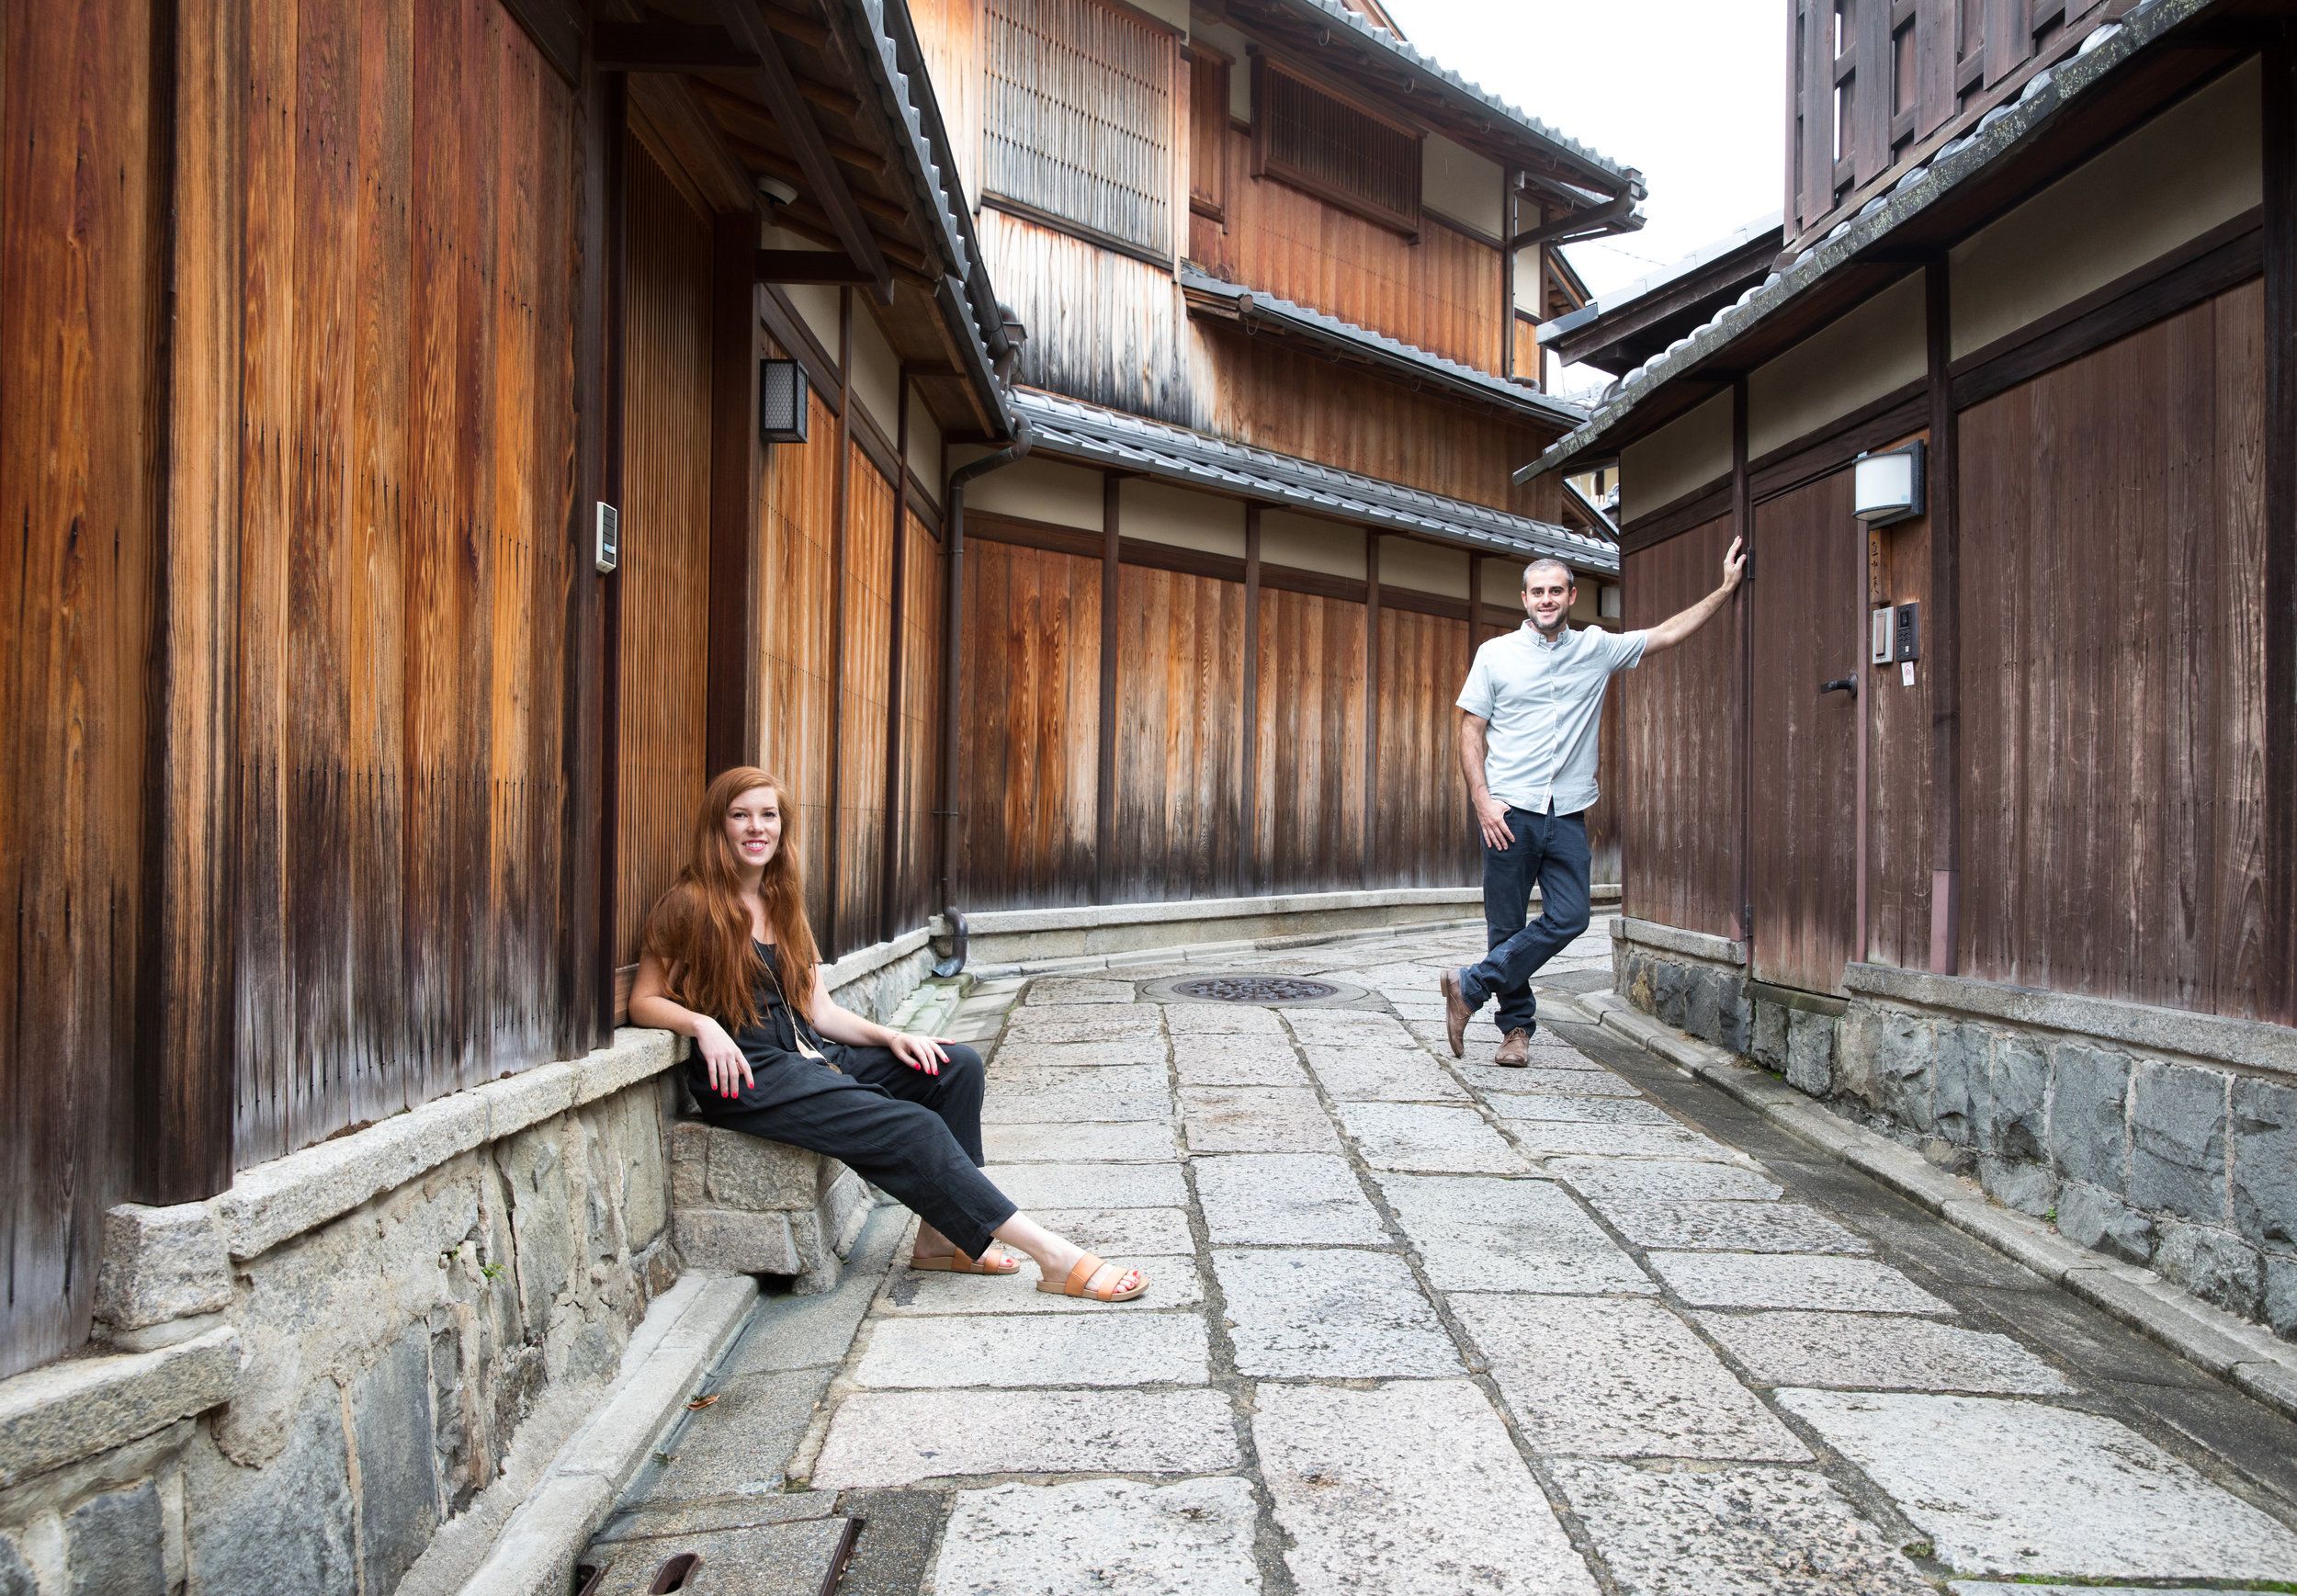 Sprazzi_Professional_Photography_Photographer_Kyoto_Japan_Dario_Original_19.jpg